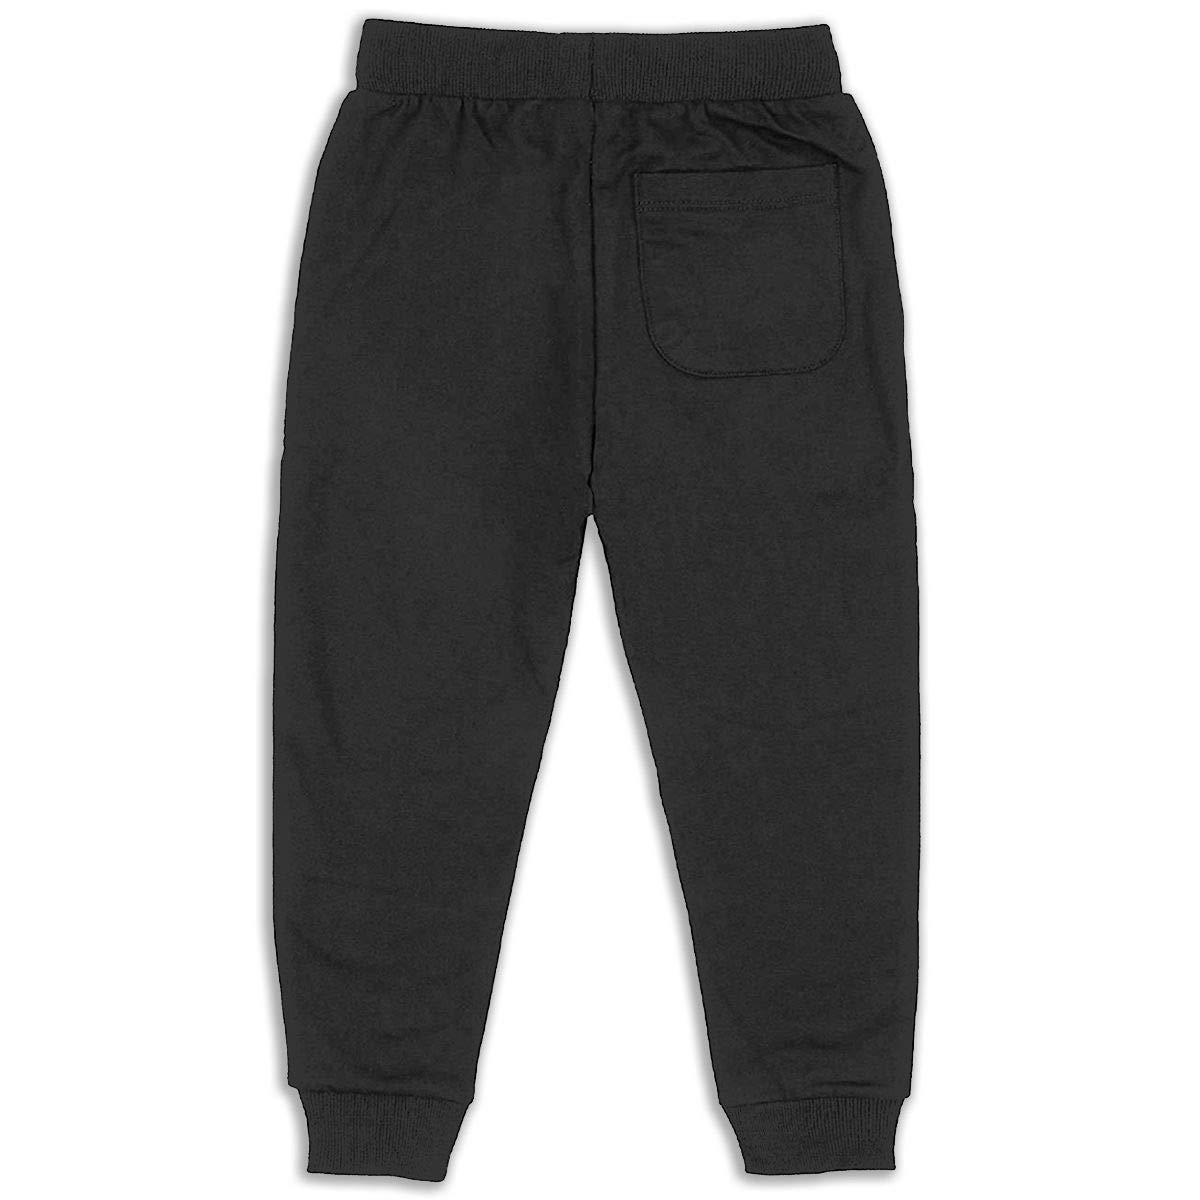 Soft Cozy Girls Boys Elastic Trousers Udyi/&Jln-97 Irish-American Flag-1 Kids /& Toddler Sweatpants